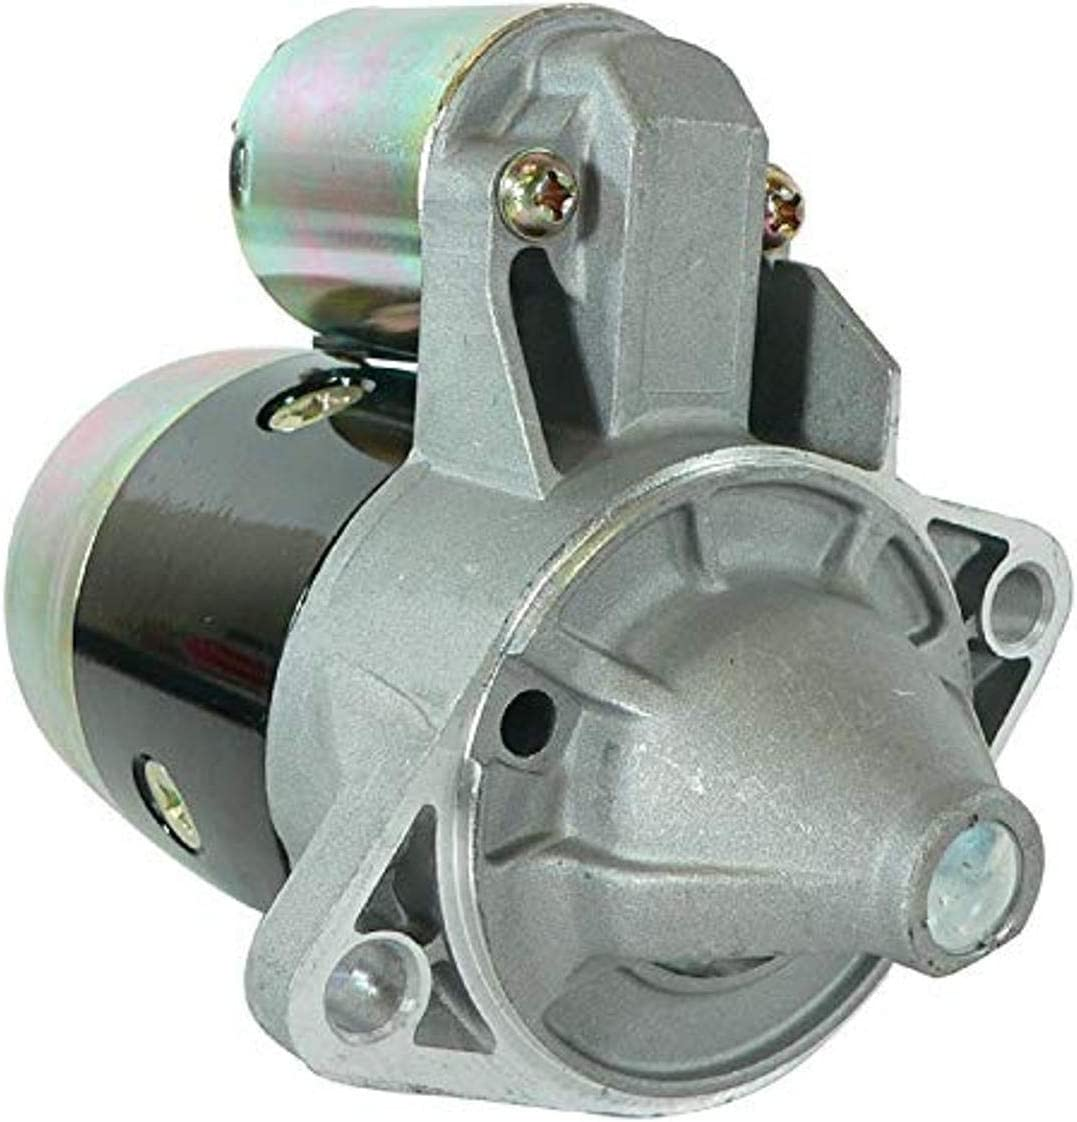 DB Electrical SMT0029 Starter Compatible With/Replacement For Nissan Fork Lift Trucks AEH APH CEF CPH CQF EGH F01 PH01/ TCM Trucks FG10 FG14N FG15N/23300-00H00, 23300-00H10, 23300-00H11, 23300-60S10